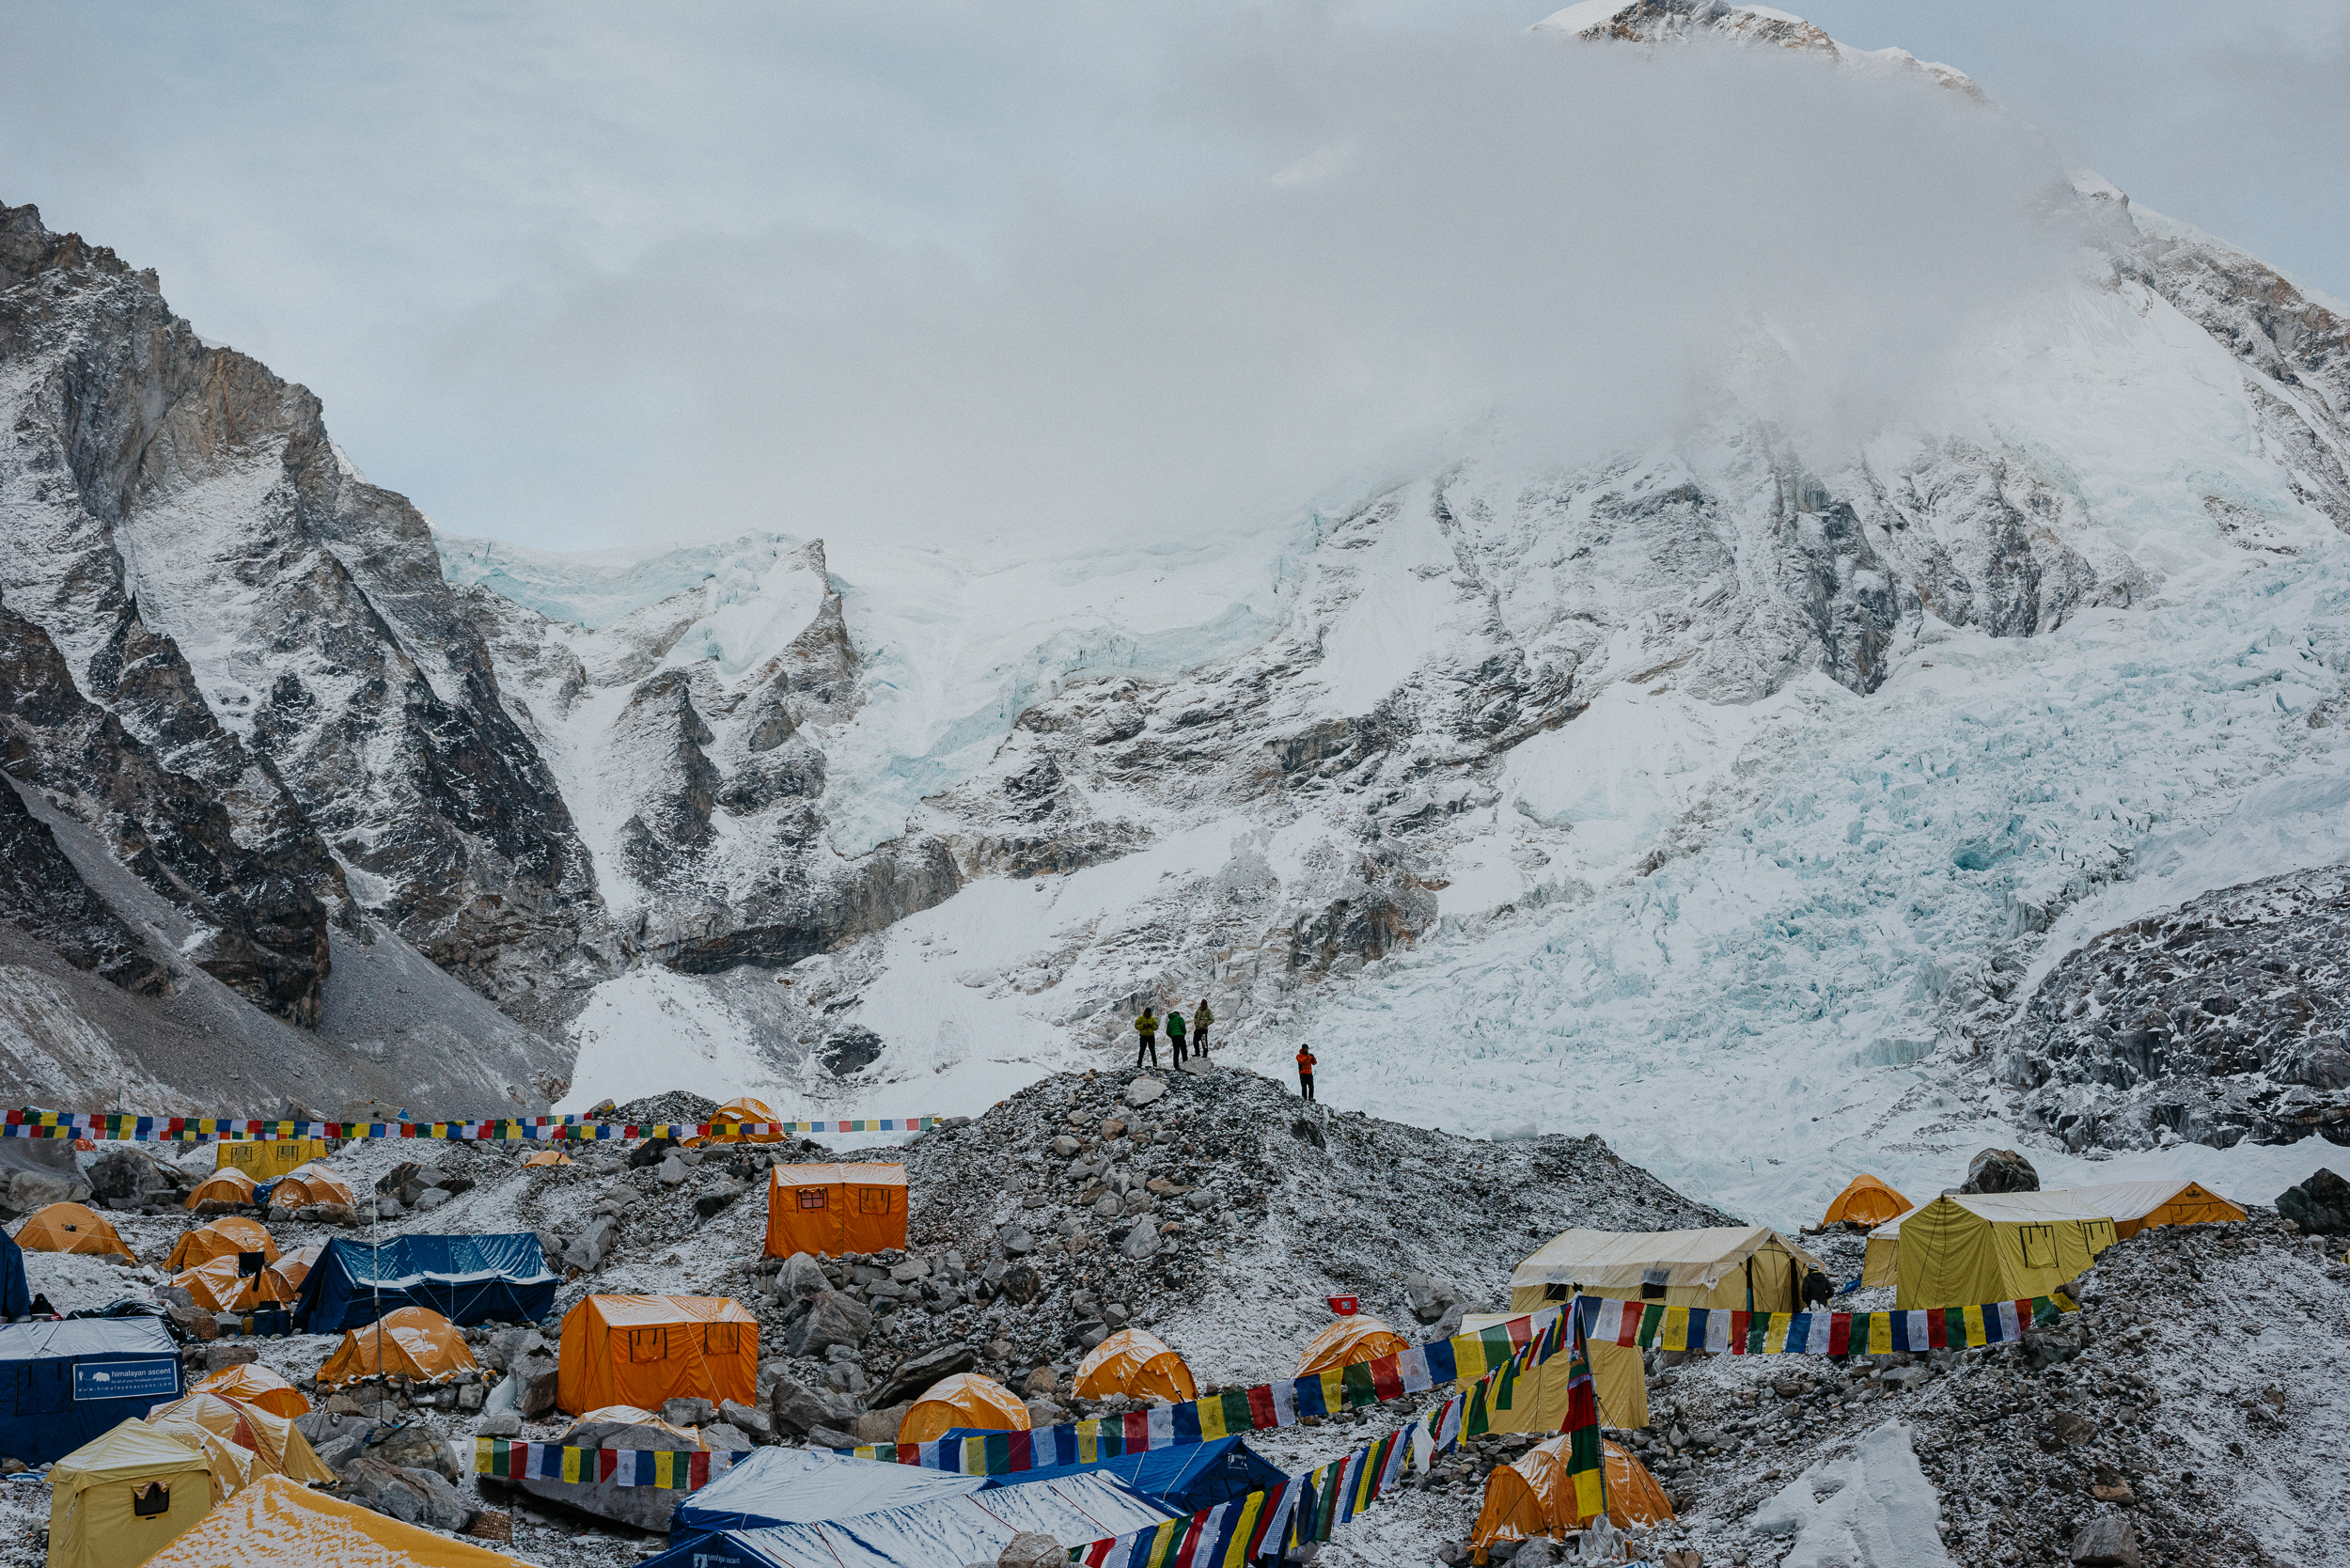 Nepal_EverestBaseCamp_2019_TaraShupe_Photography_DSC_4257.jpg